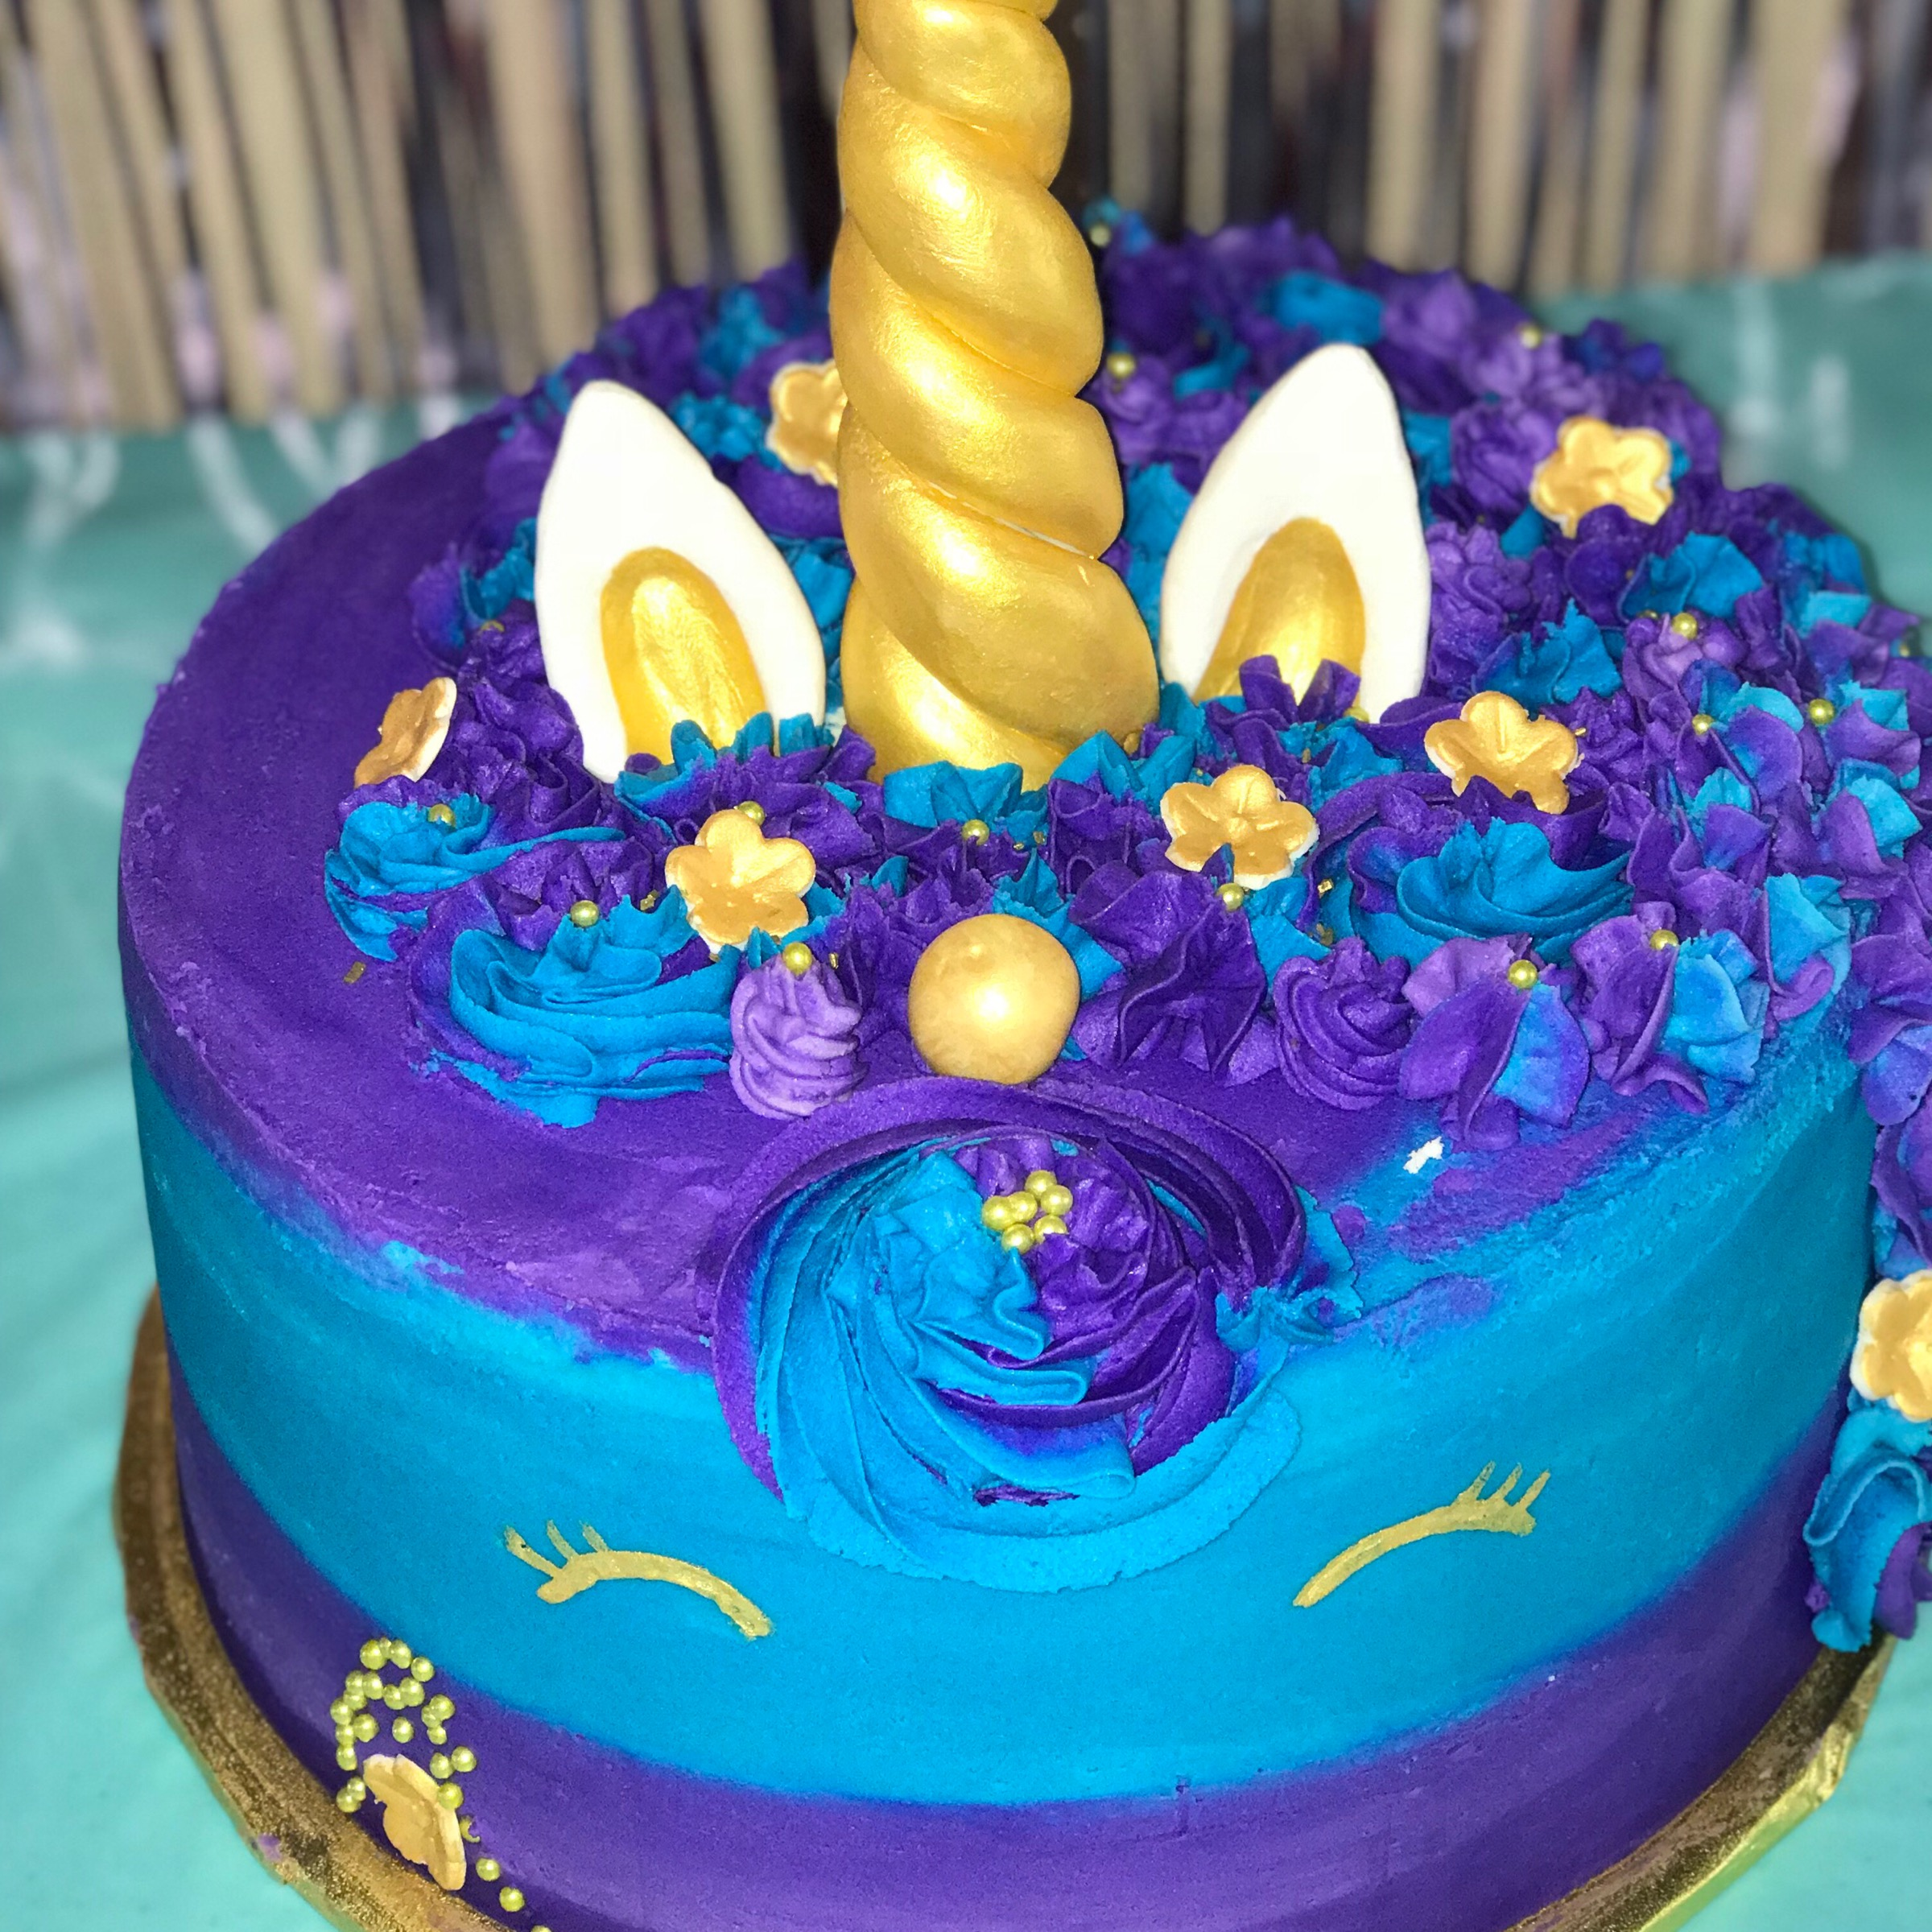 Unicorn Cake made by Jassy Sassy Sweets